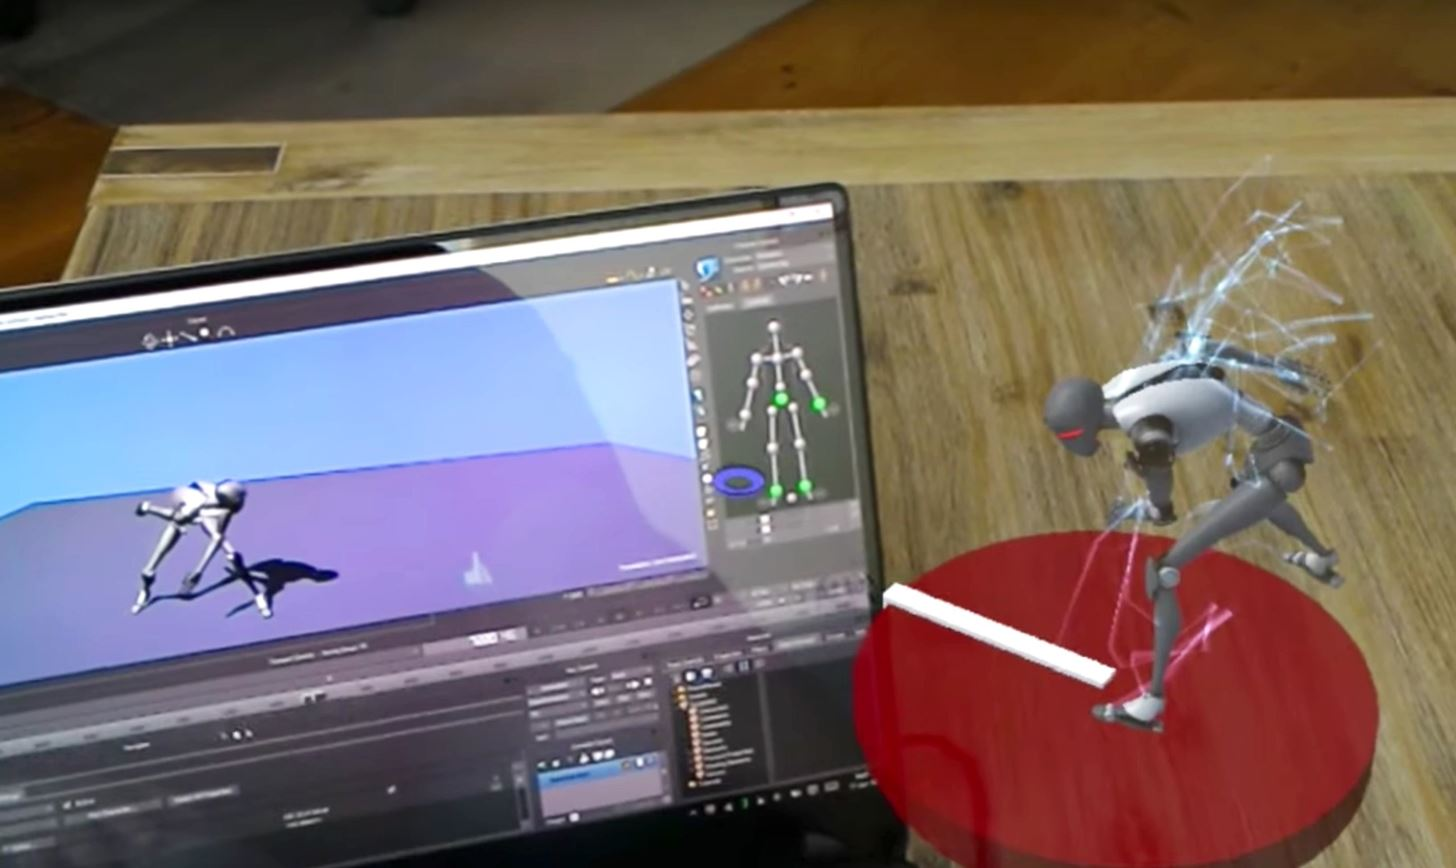 This App Streams Custom Holograms from a Computer to the HoloLens